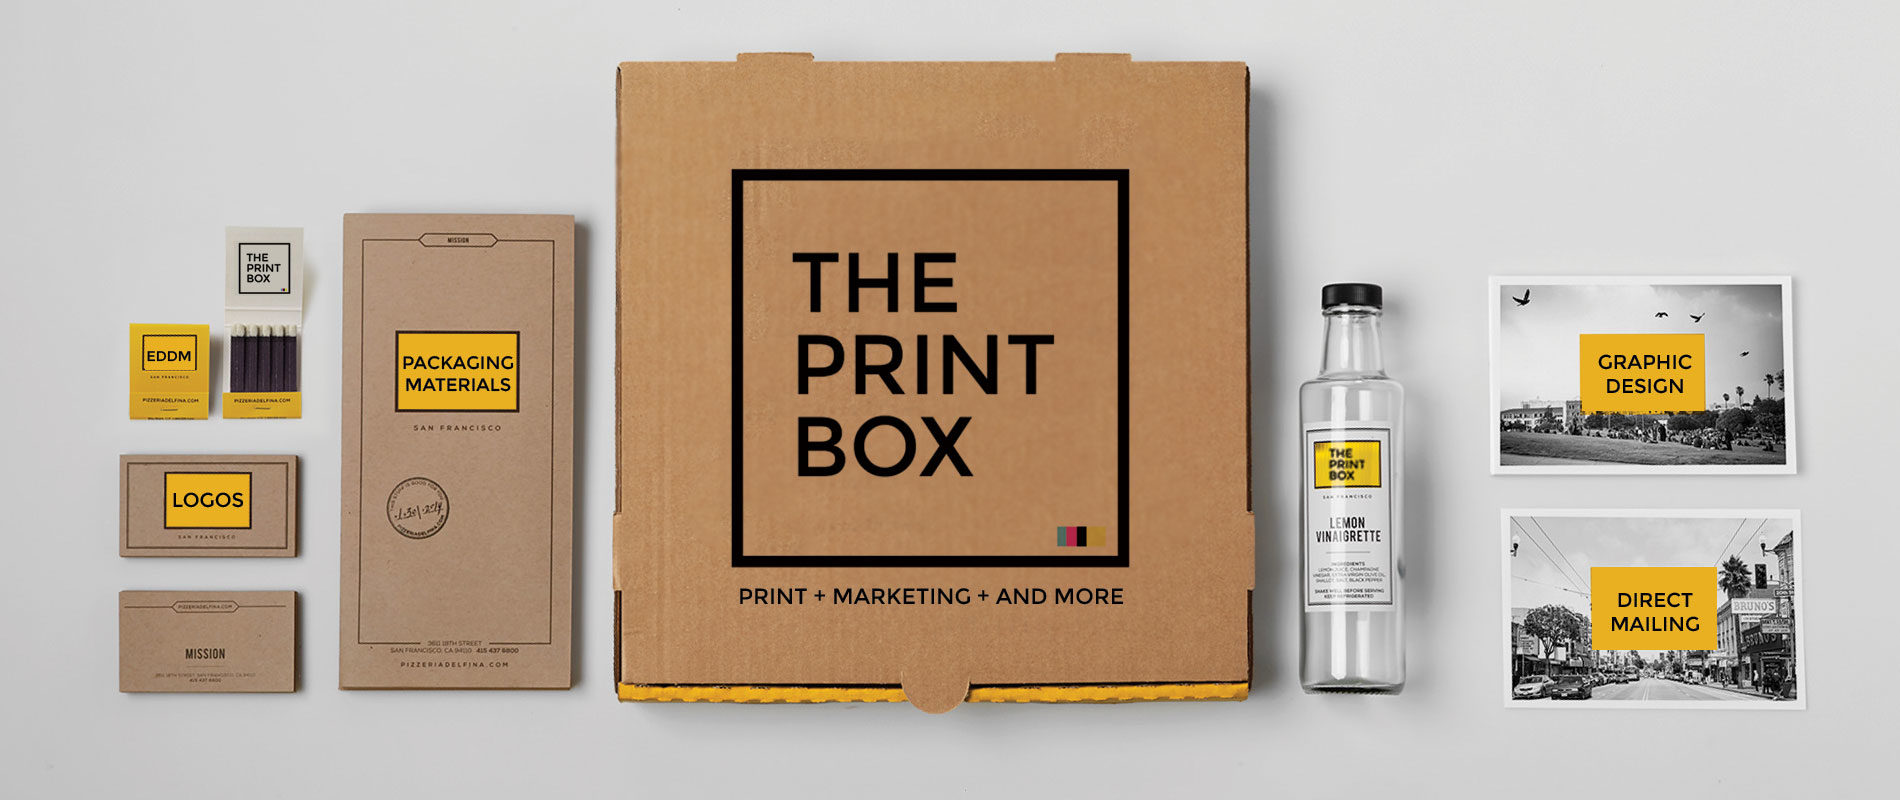 THE PRINT BOX - Printing, Marketing, And More...